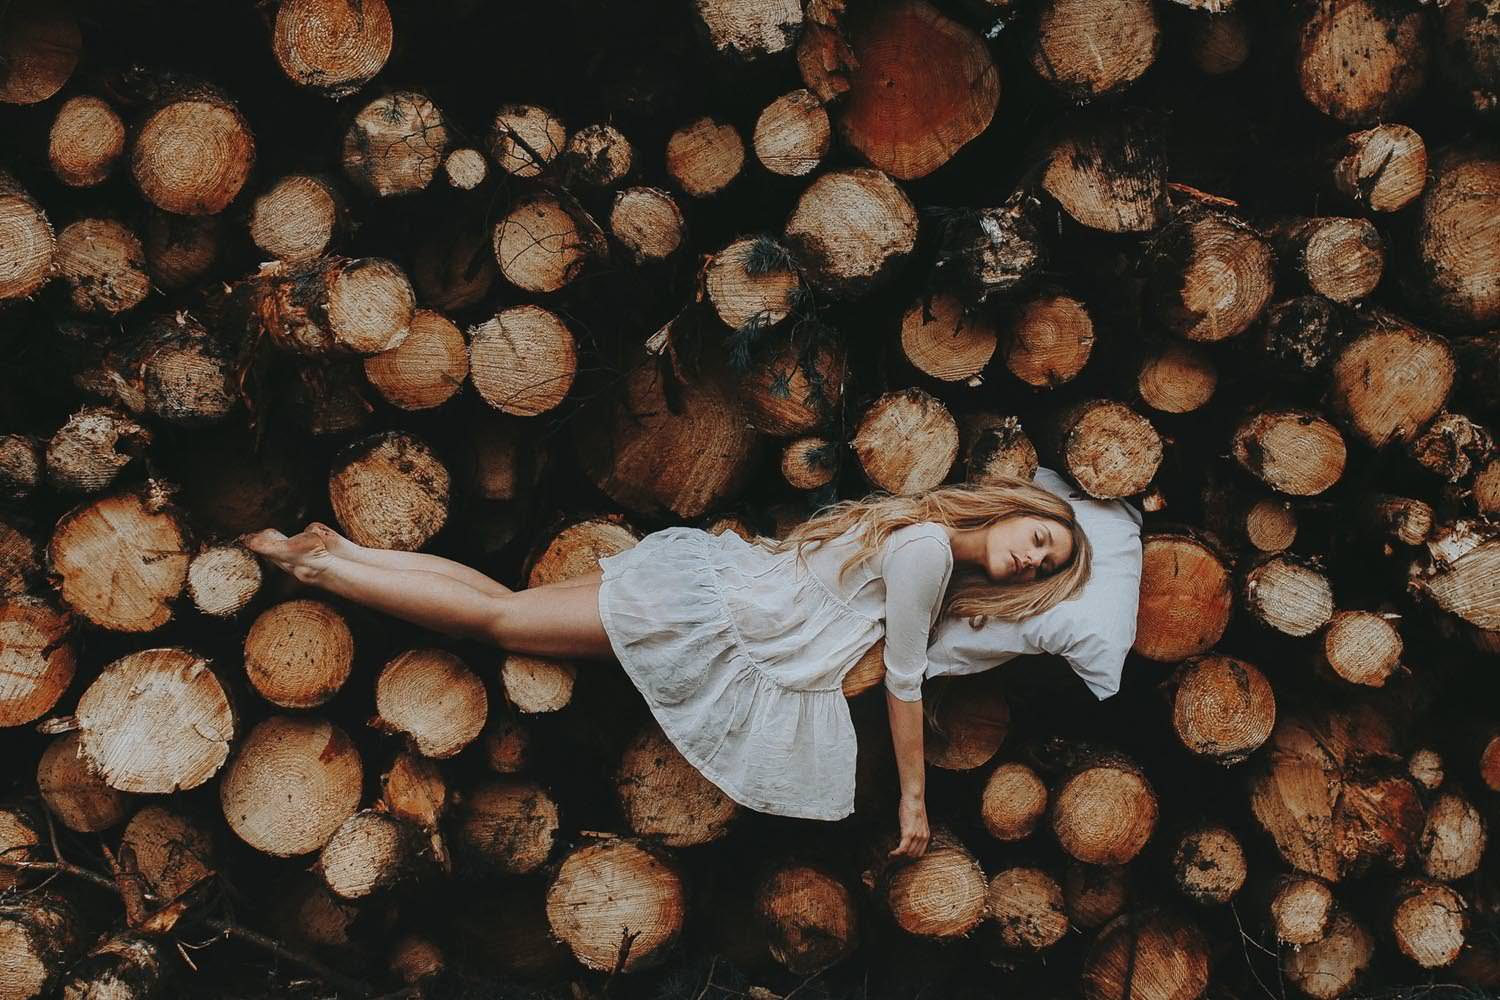 Rosie Hardy Sleeping on Logs